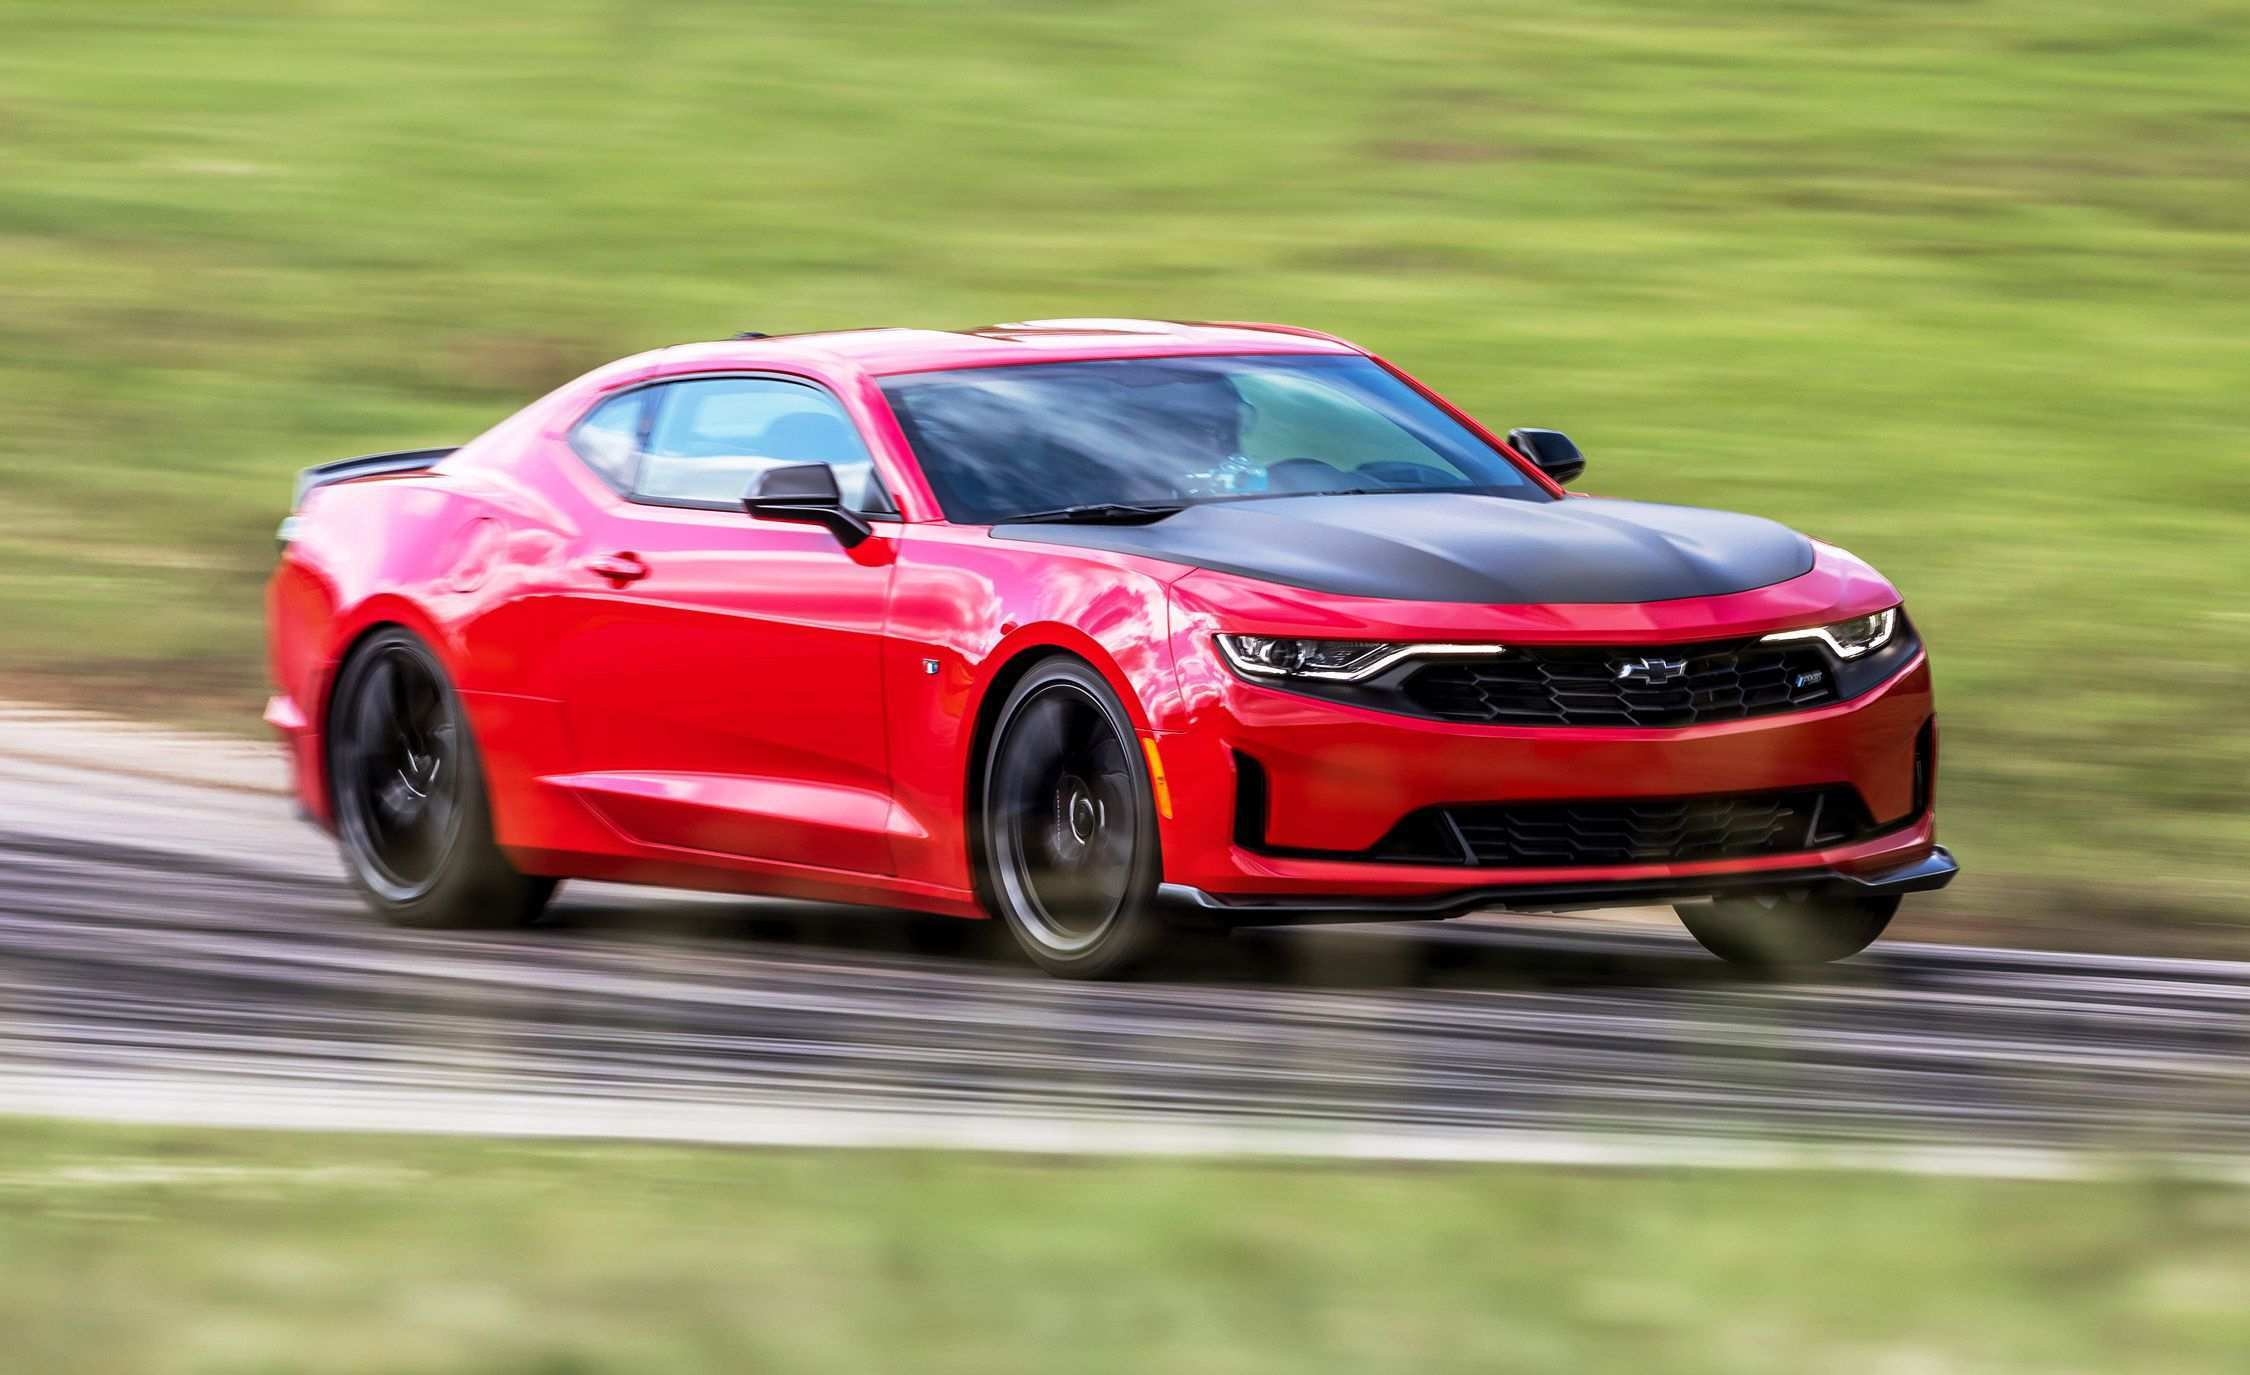 93 The 2020 Chevy Camaro Price Design And Review